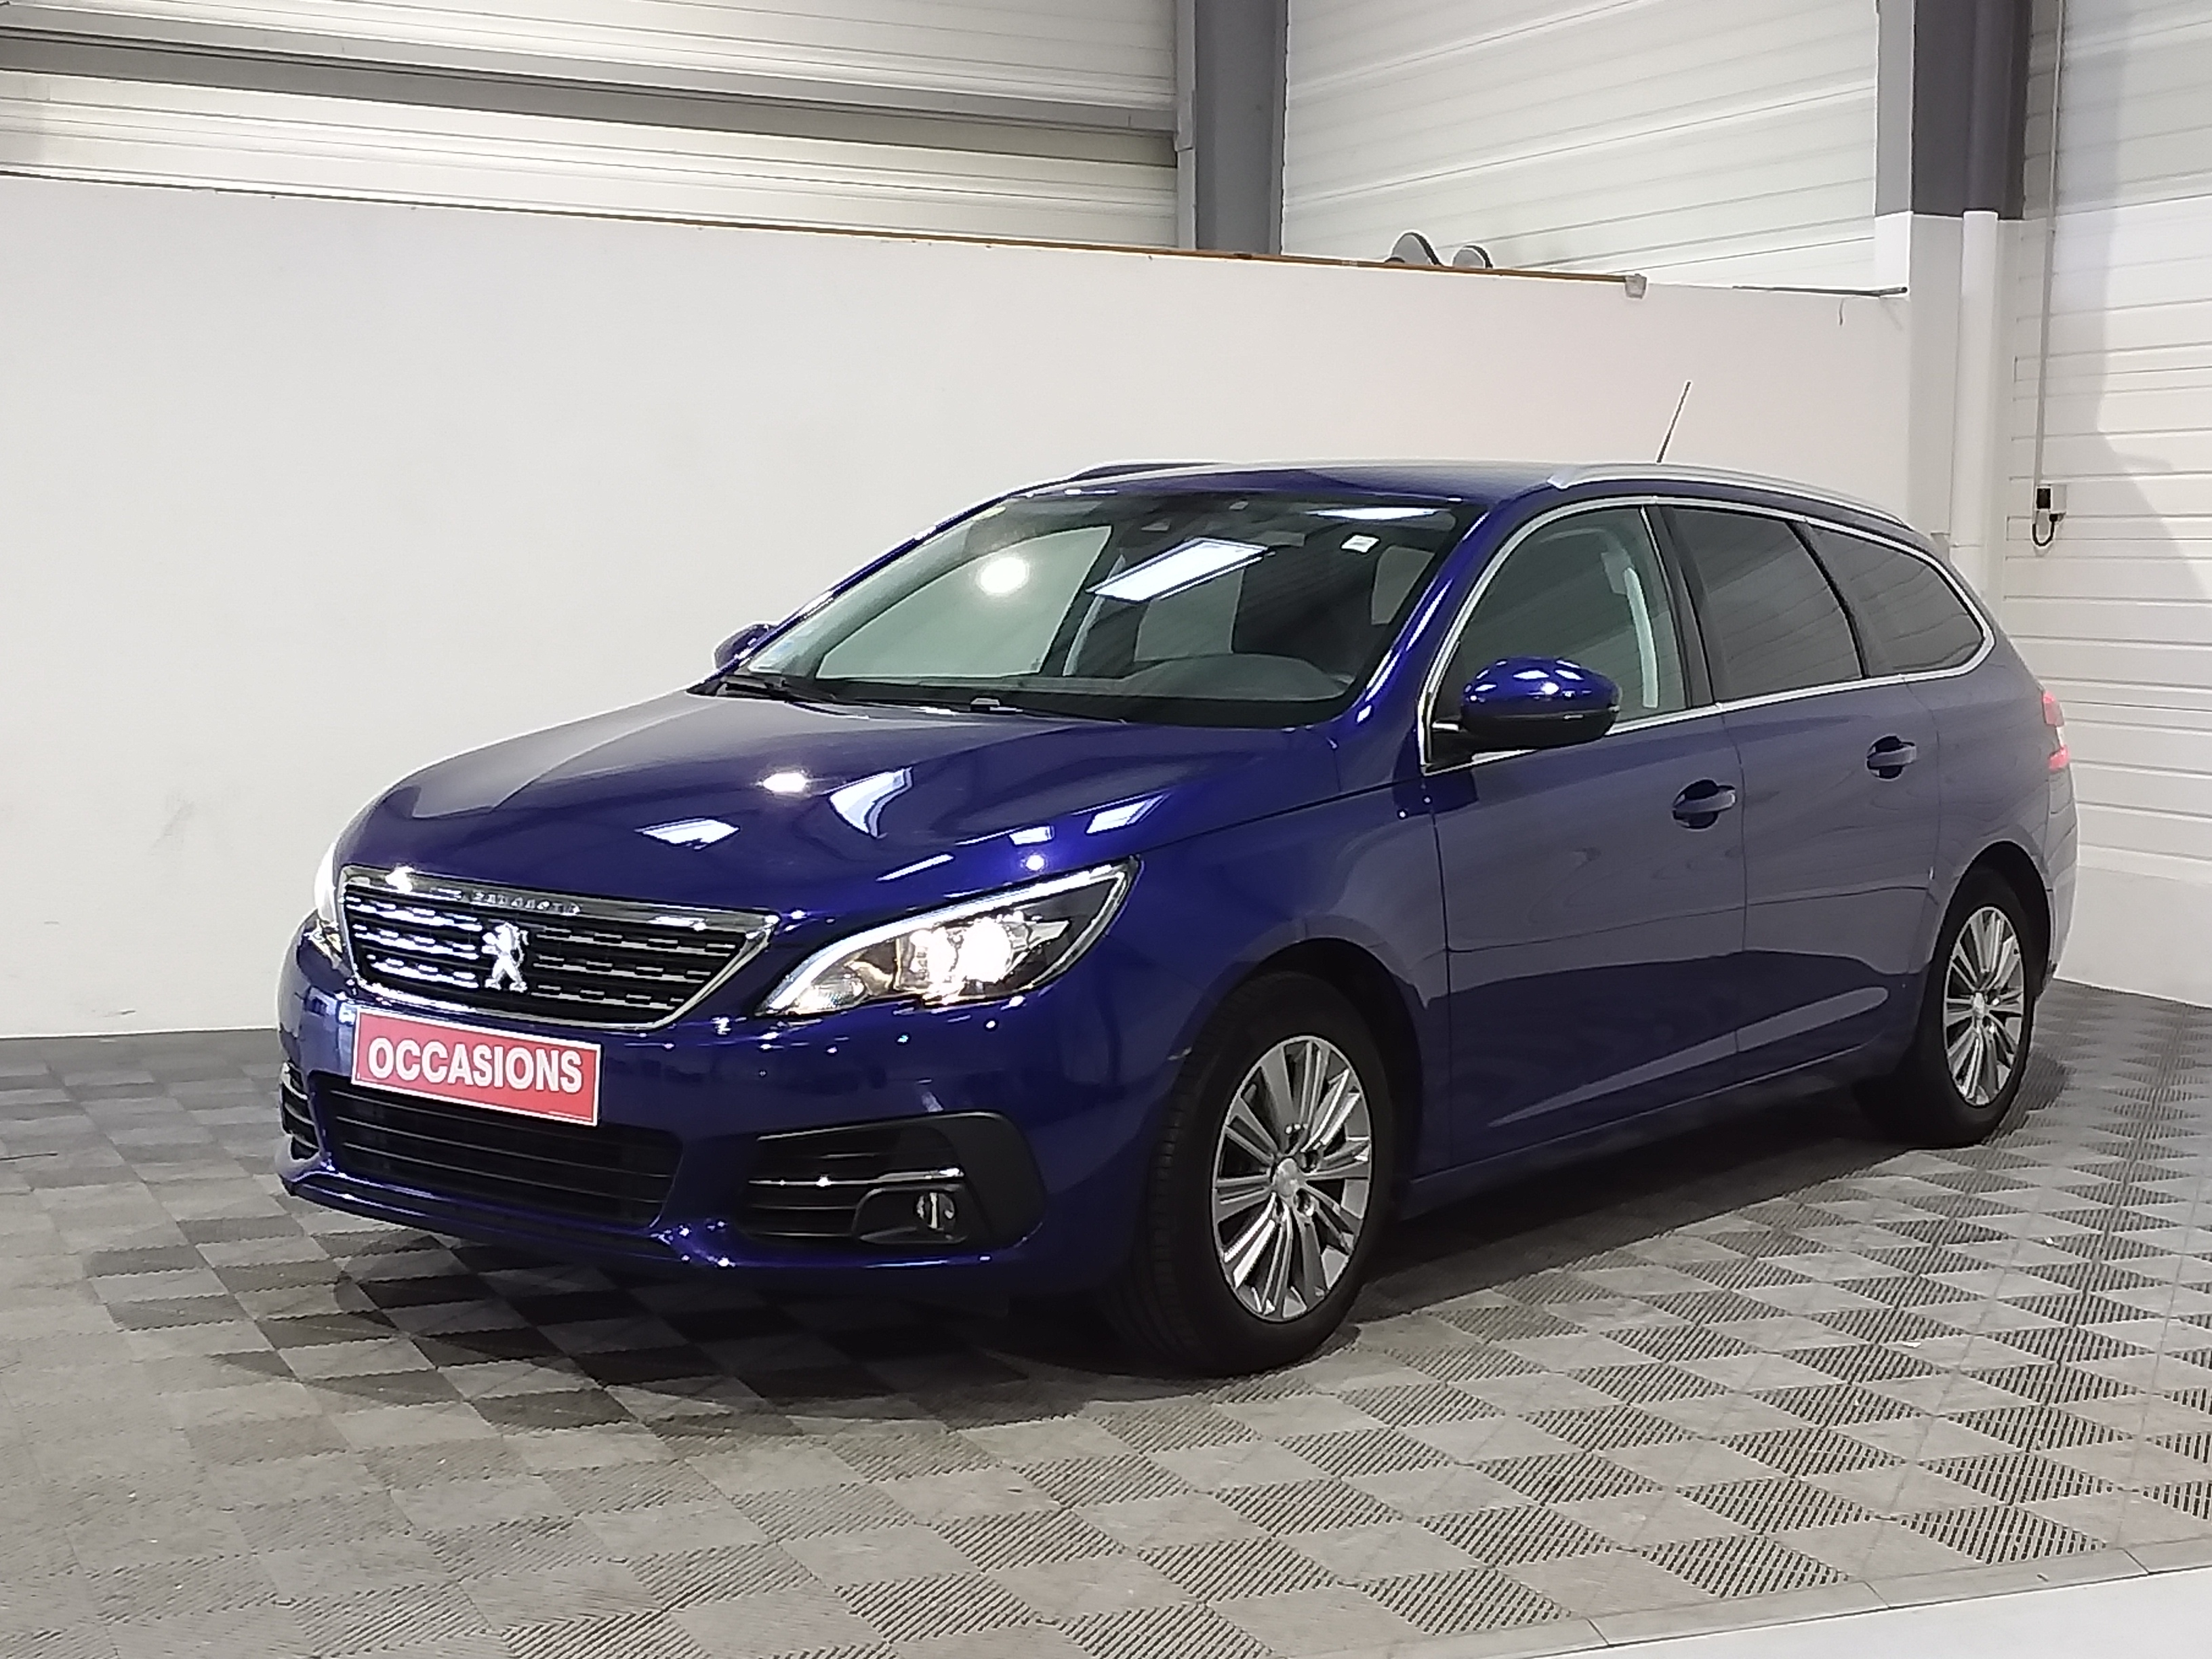 PEUGEOT 308 SW 1.6 BlueHDi 120ch S&S Allure Basse Consommation d'occasion